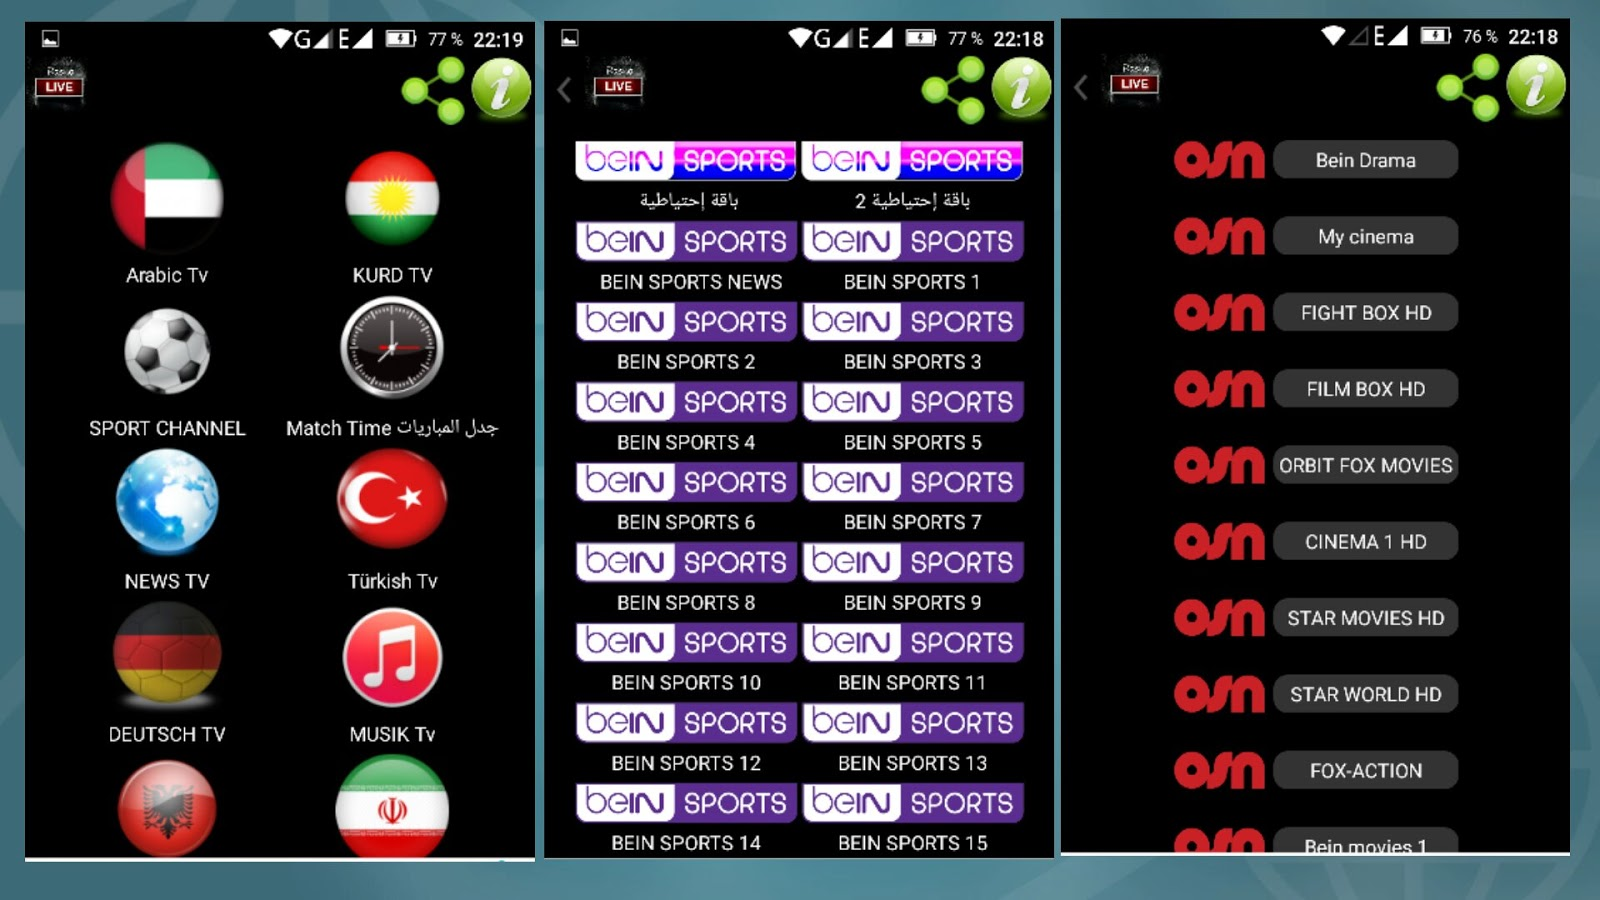 Rasho tv your new favorite iptv android app 2019 - superiptvfree